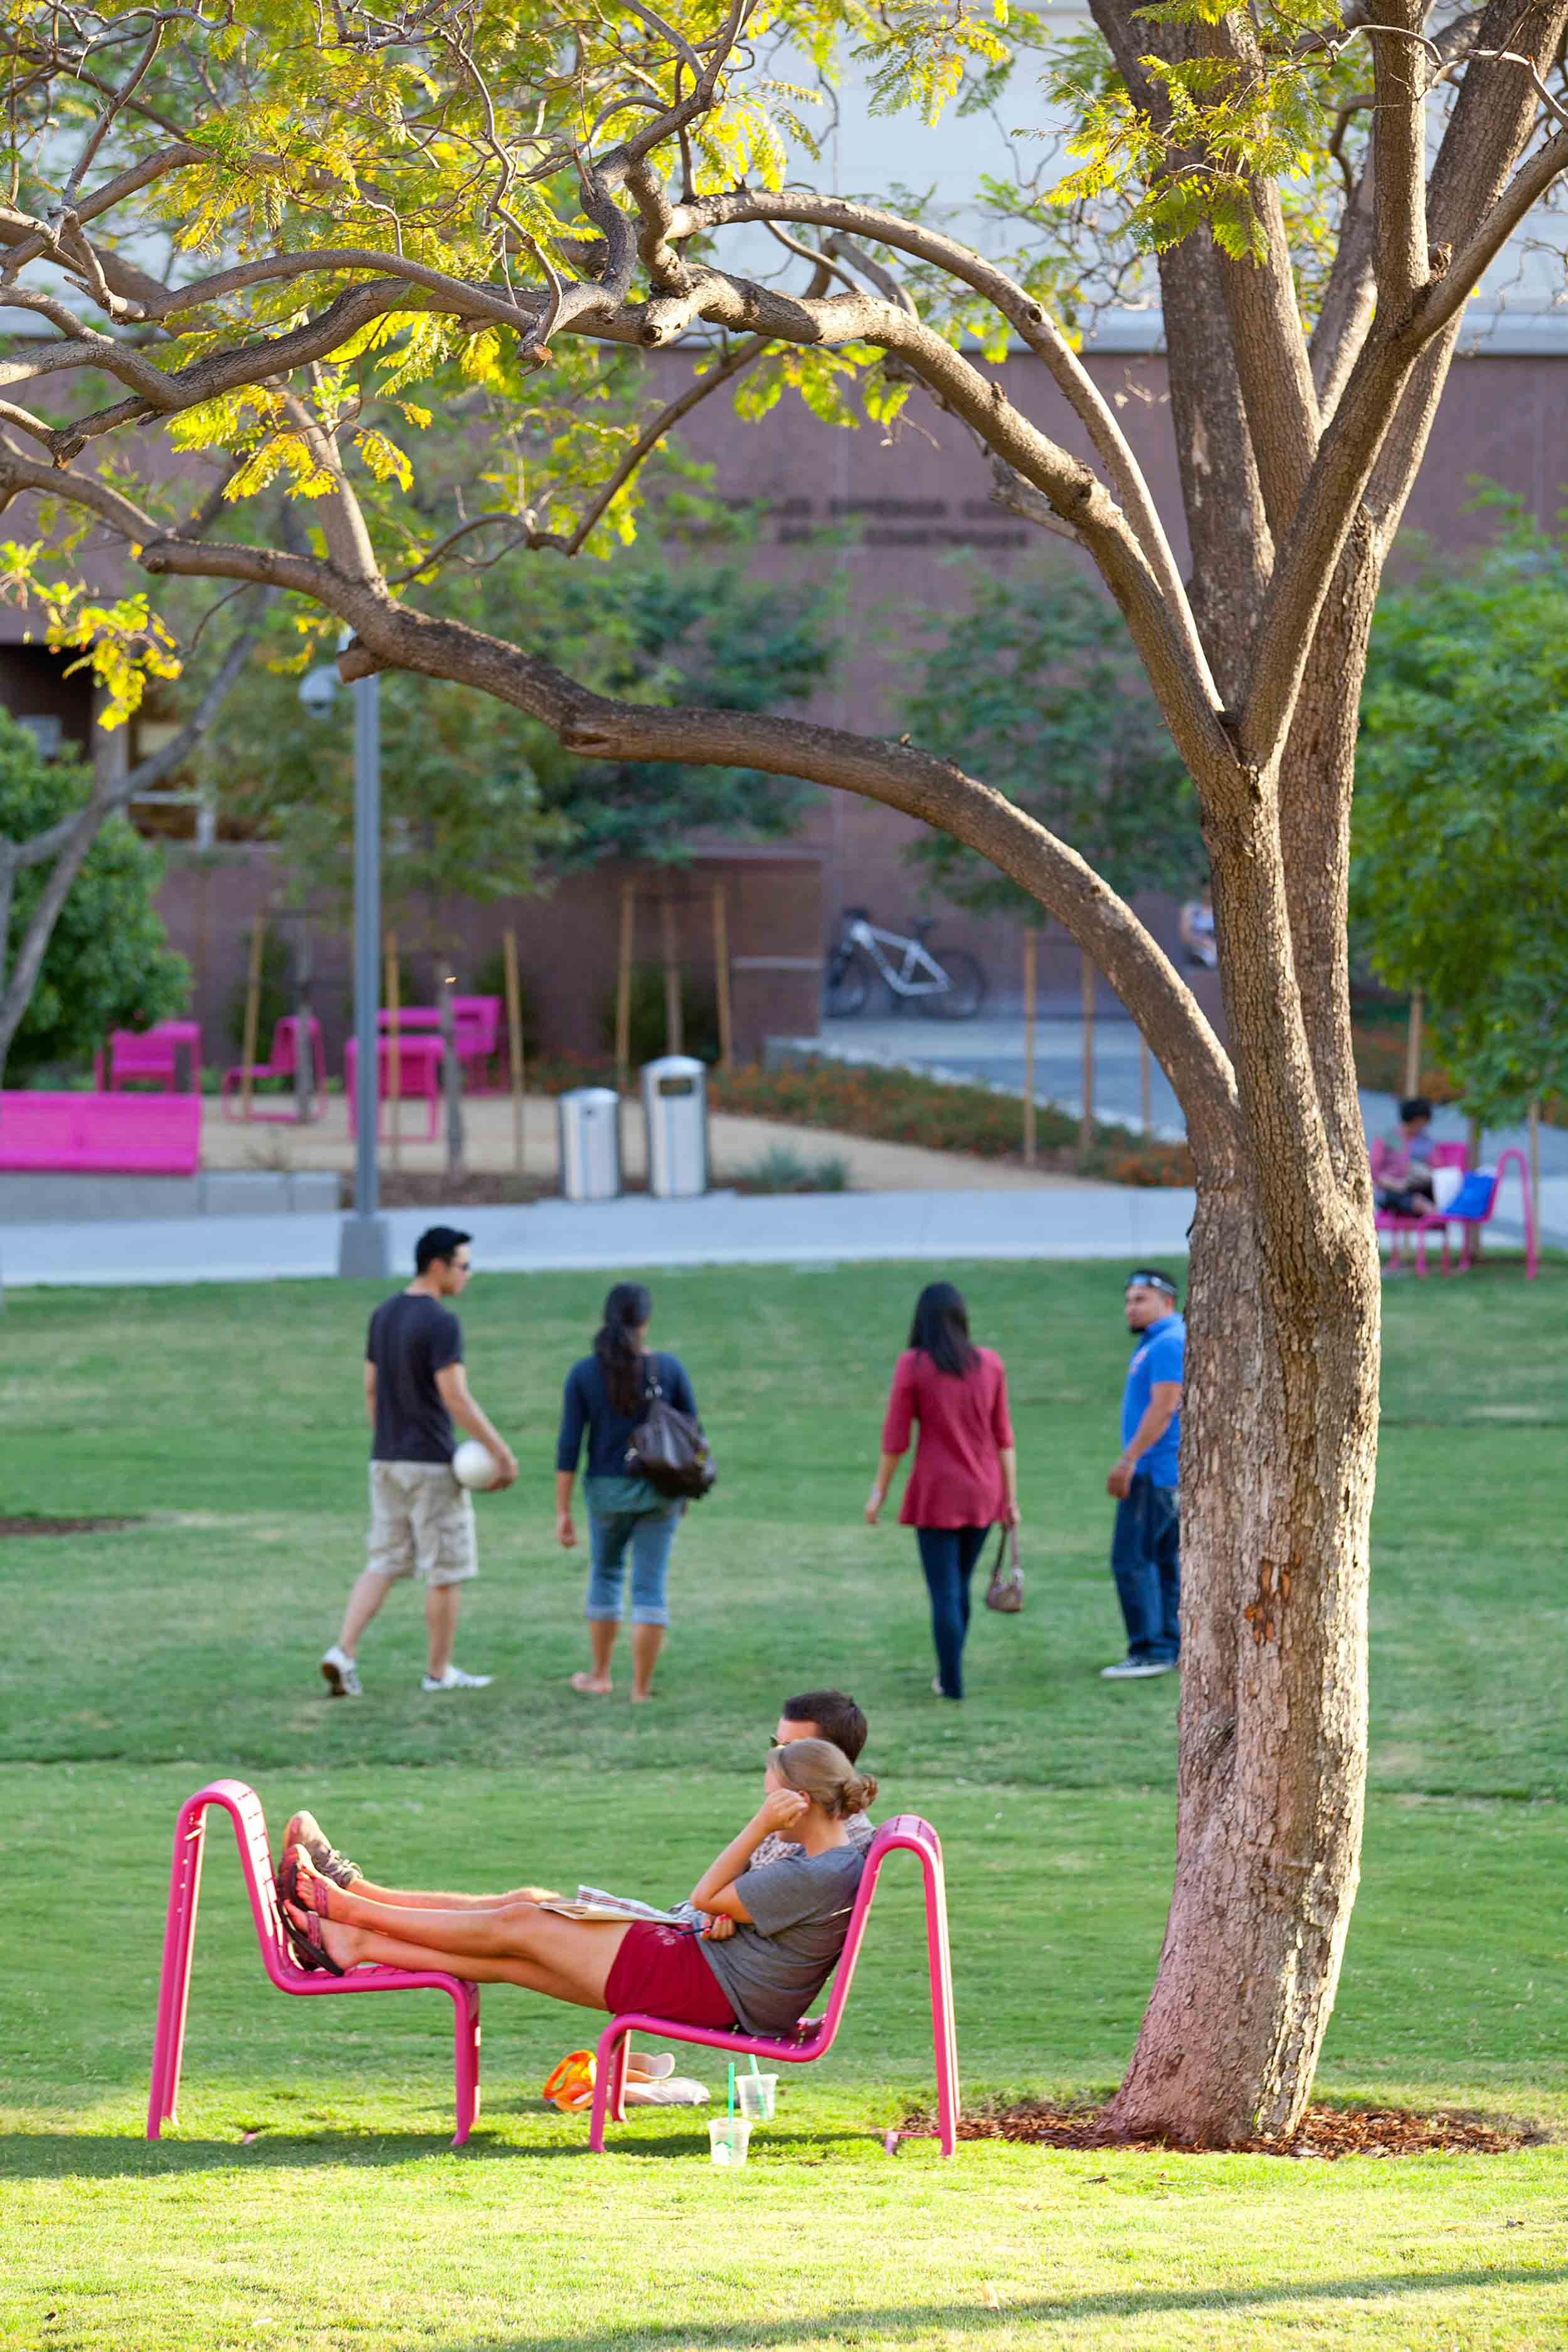 people seated in pink chairs under a tree on a grassy lawn with people walking in the background